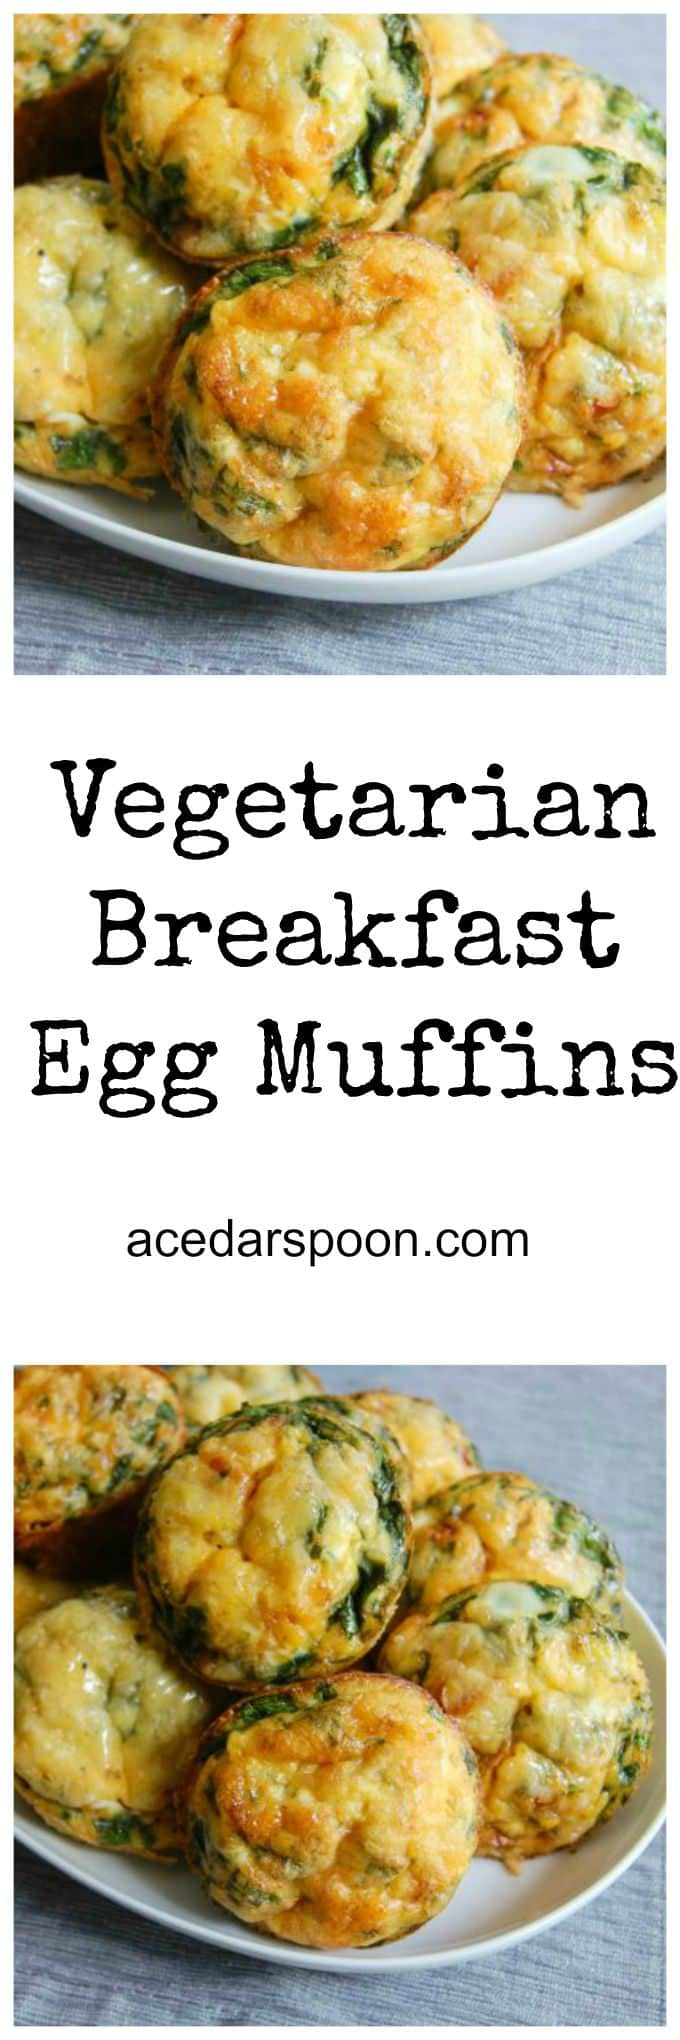 Vegetarian Breakfast Egg Muffins A Cedar Spoon